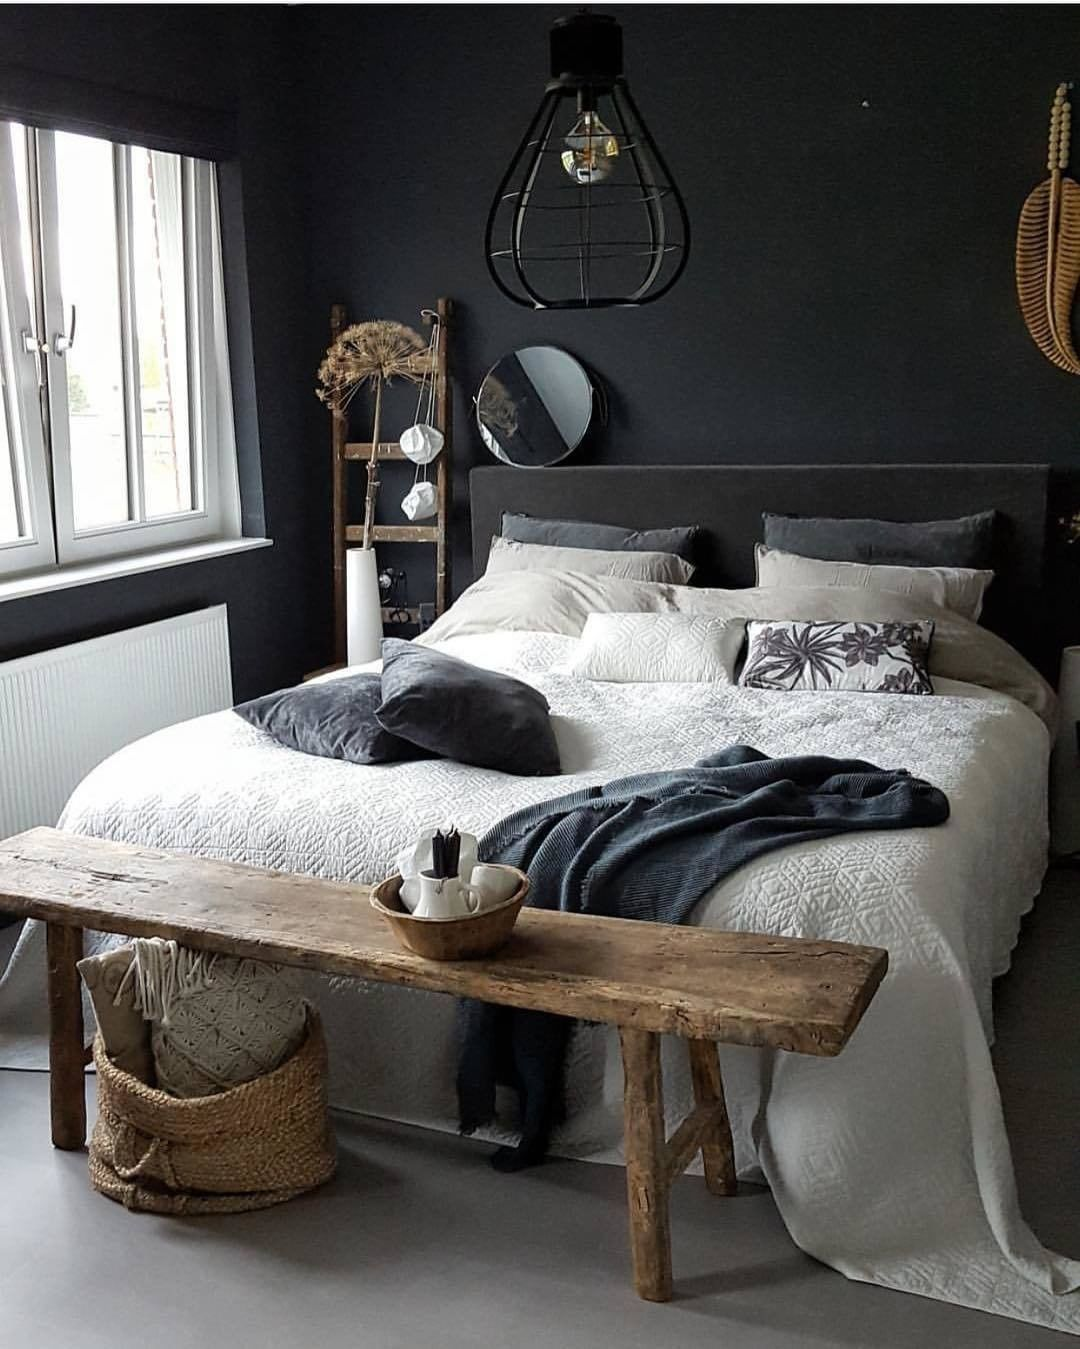 Top 30 Masculine Bedroom Part 2: Yet Another Beautifully Styled Bedroom! Via @huizedop